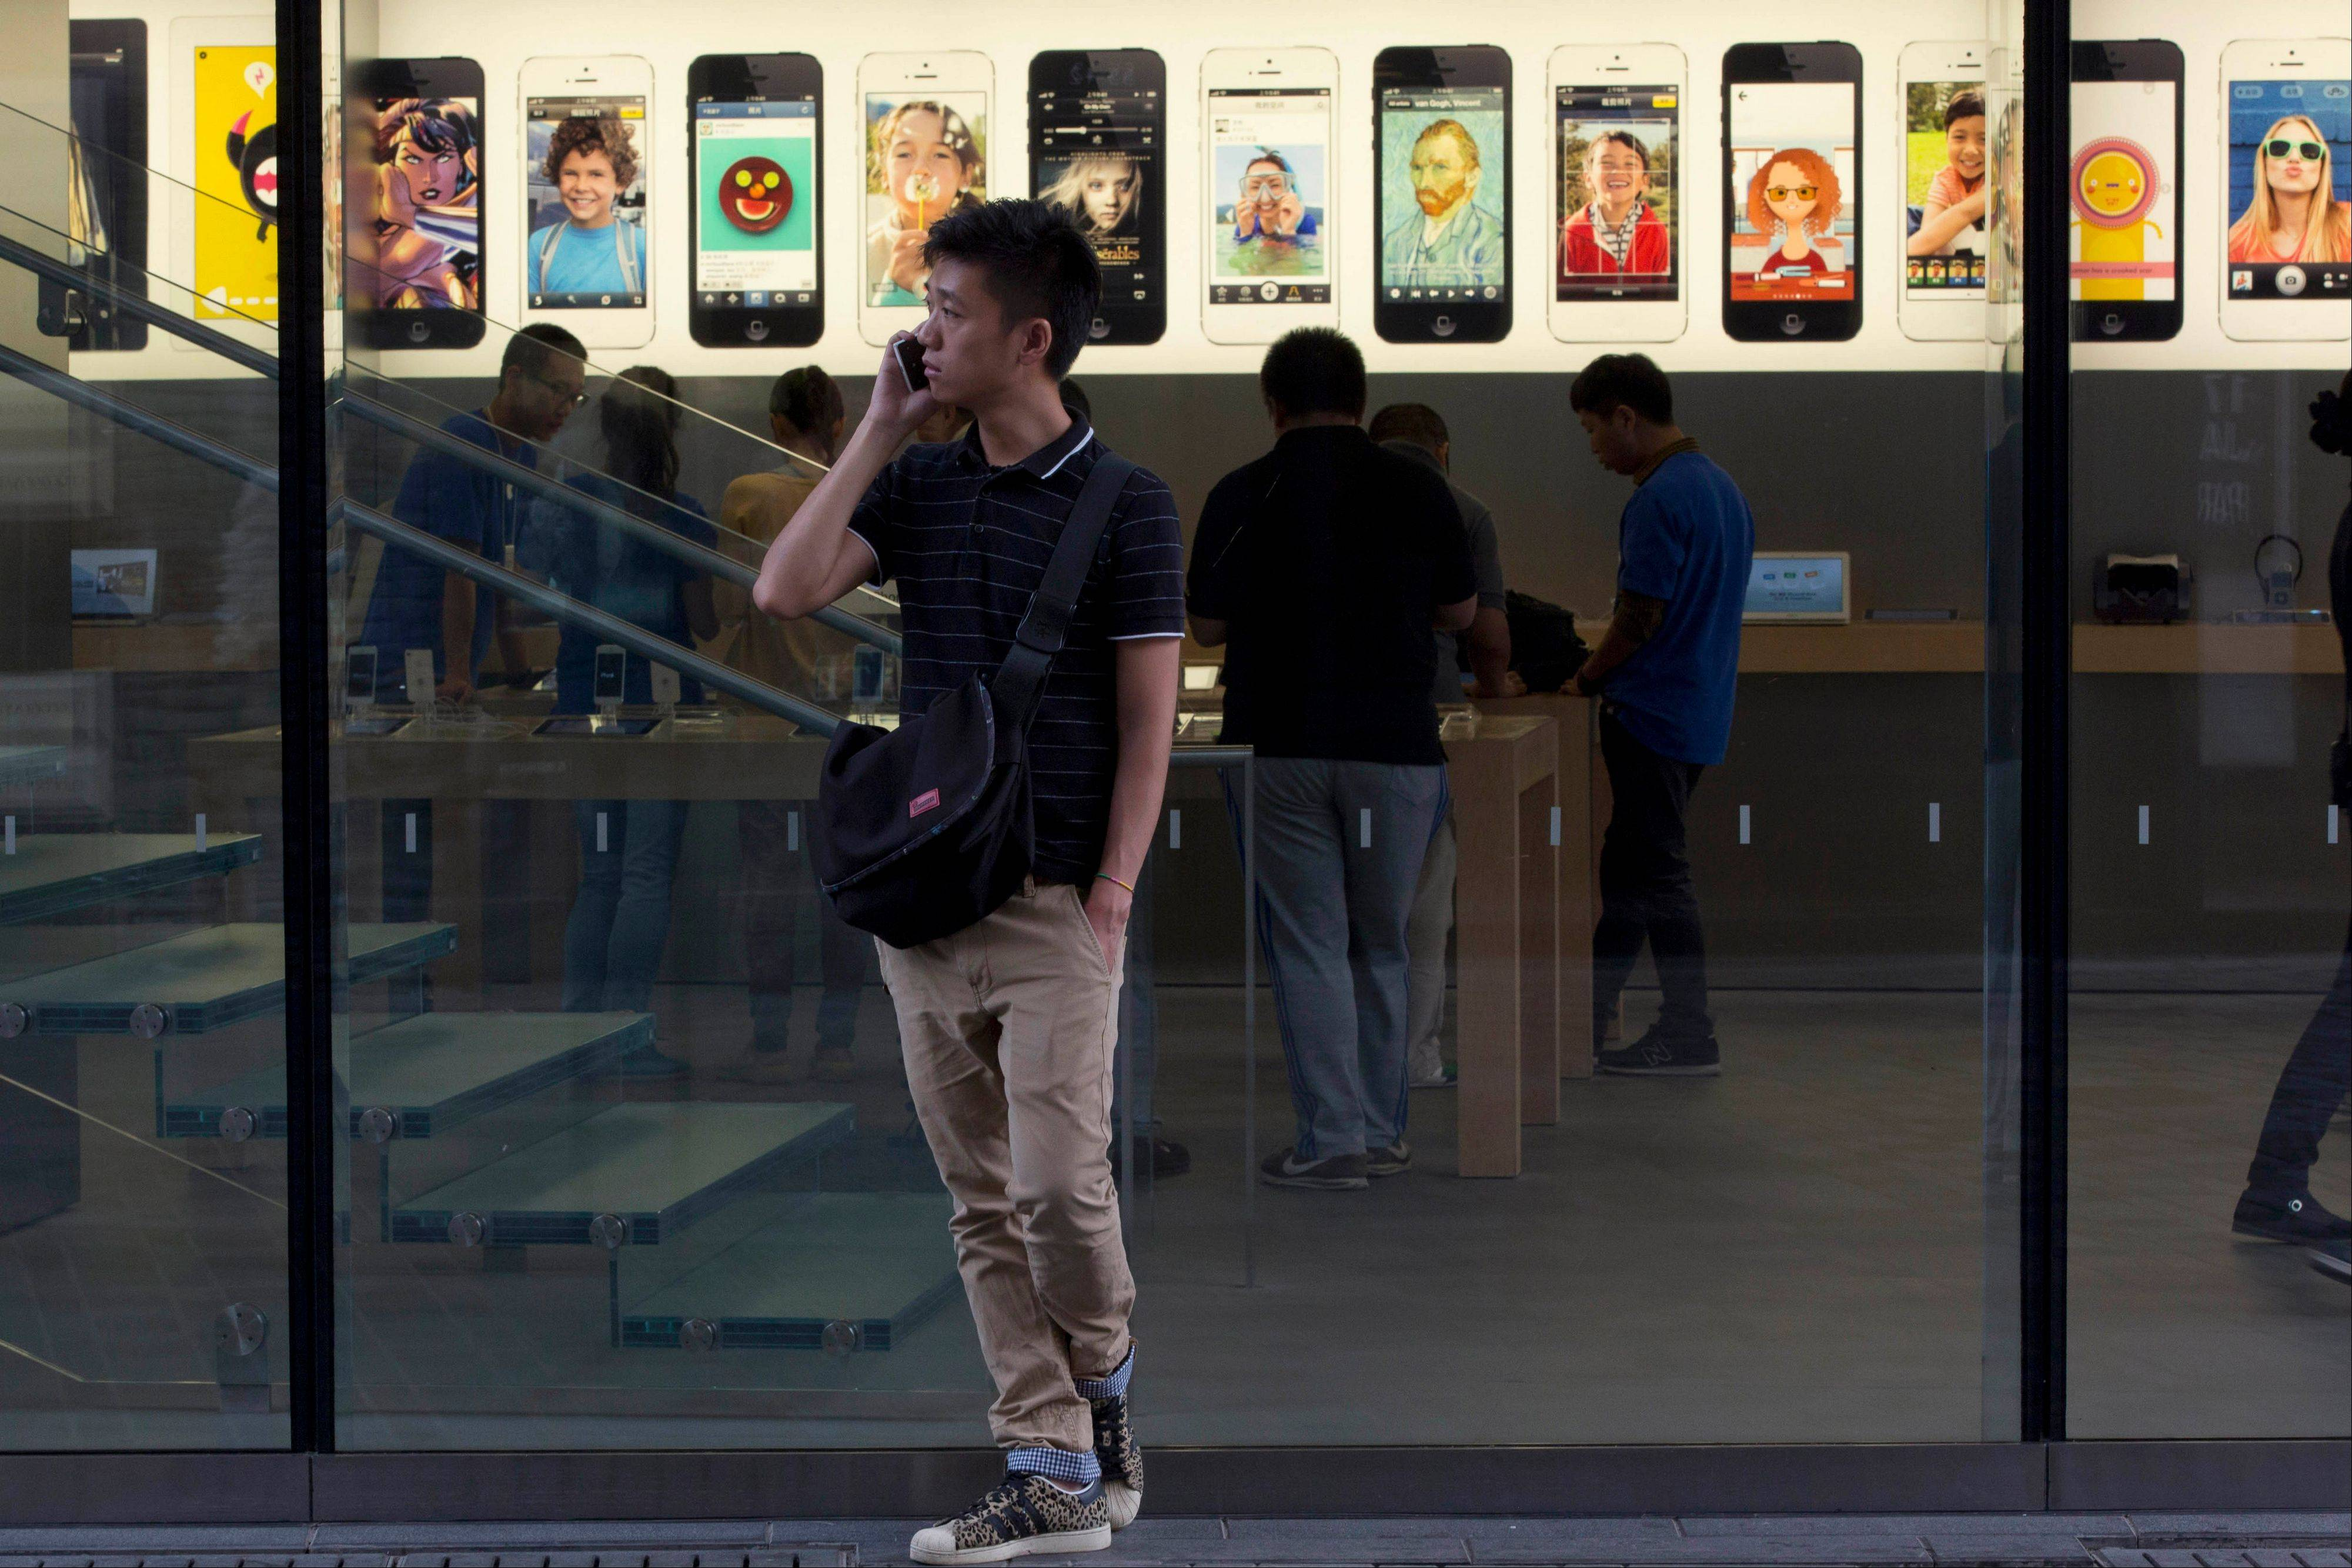 A Chinese man uses a non-Apple branded mobile phone Thursday outside a store with iPhone advertisements in Beijing. Many Chinese gadget lovers responded with a shrug when Apple Inc. unveiled two its new iPhone 5 this week. Today's market is glutted with alternatives from Samsung to bargain-priced local brands.